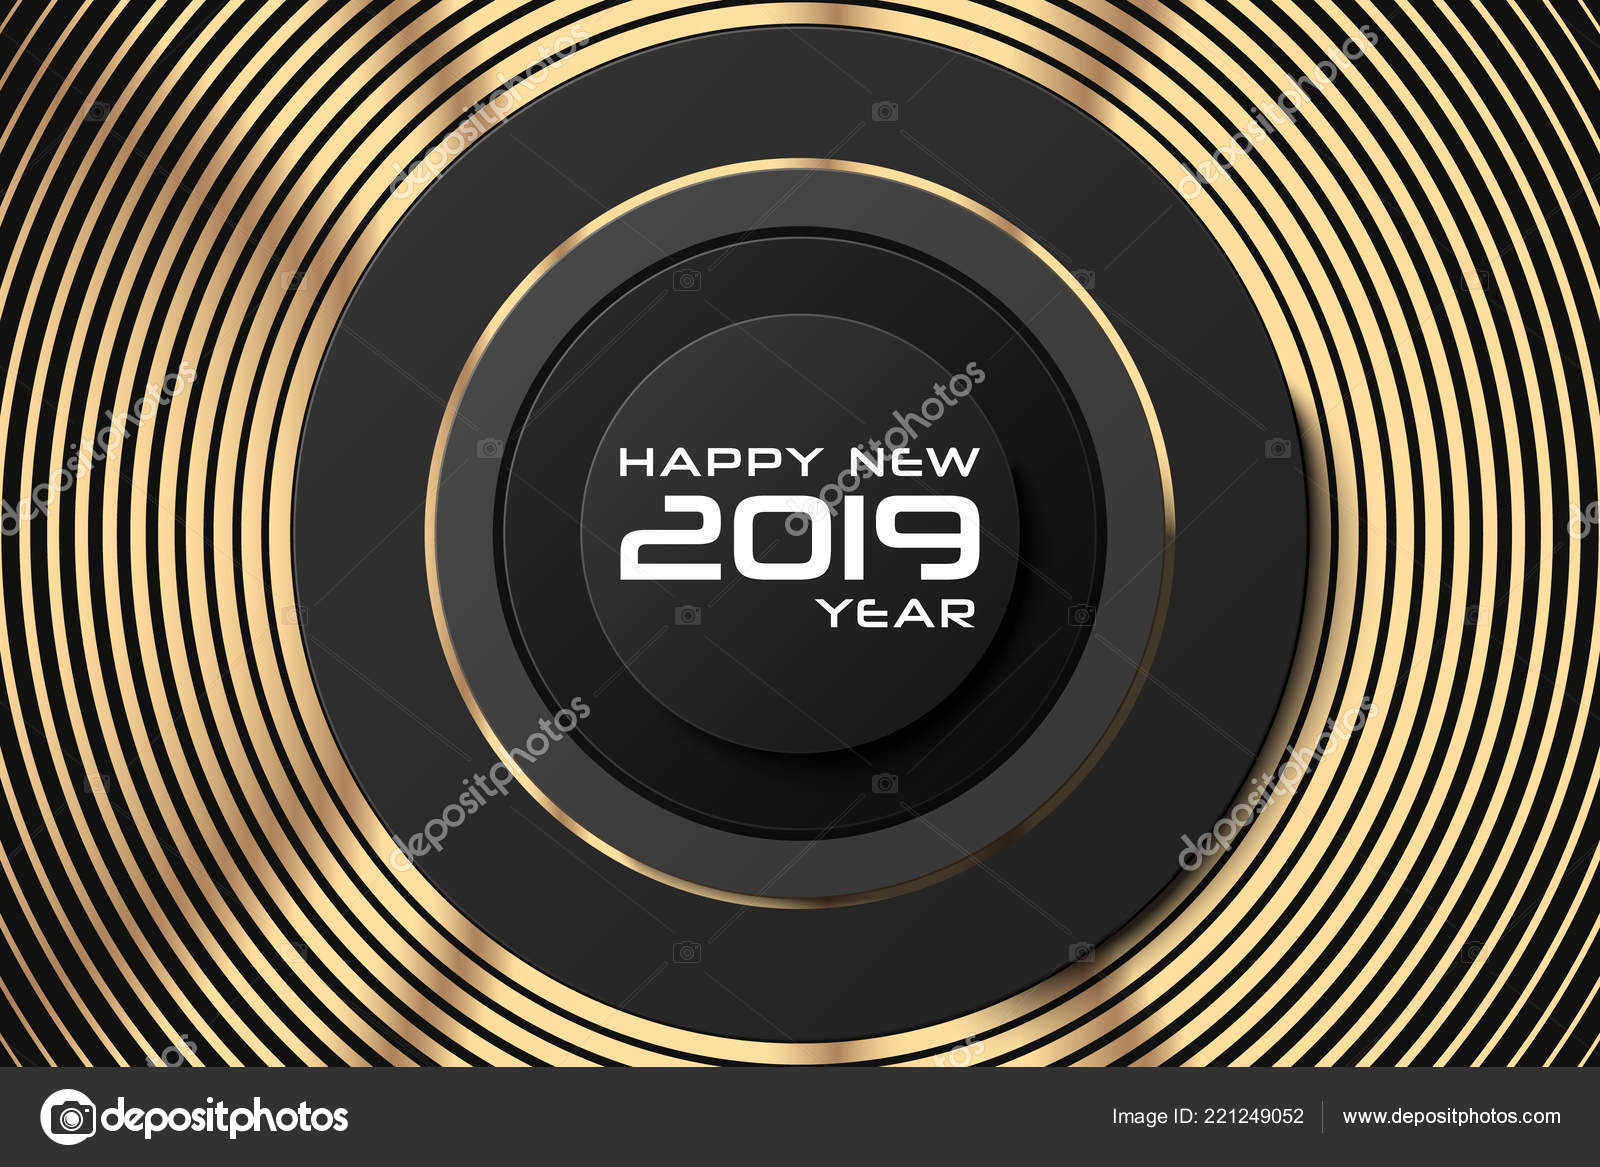 Happy New Year 2019 Abstract Holiday Cover Banner Template Black